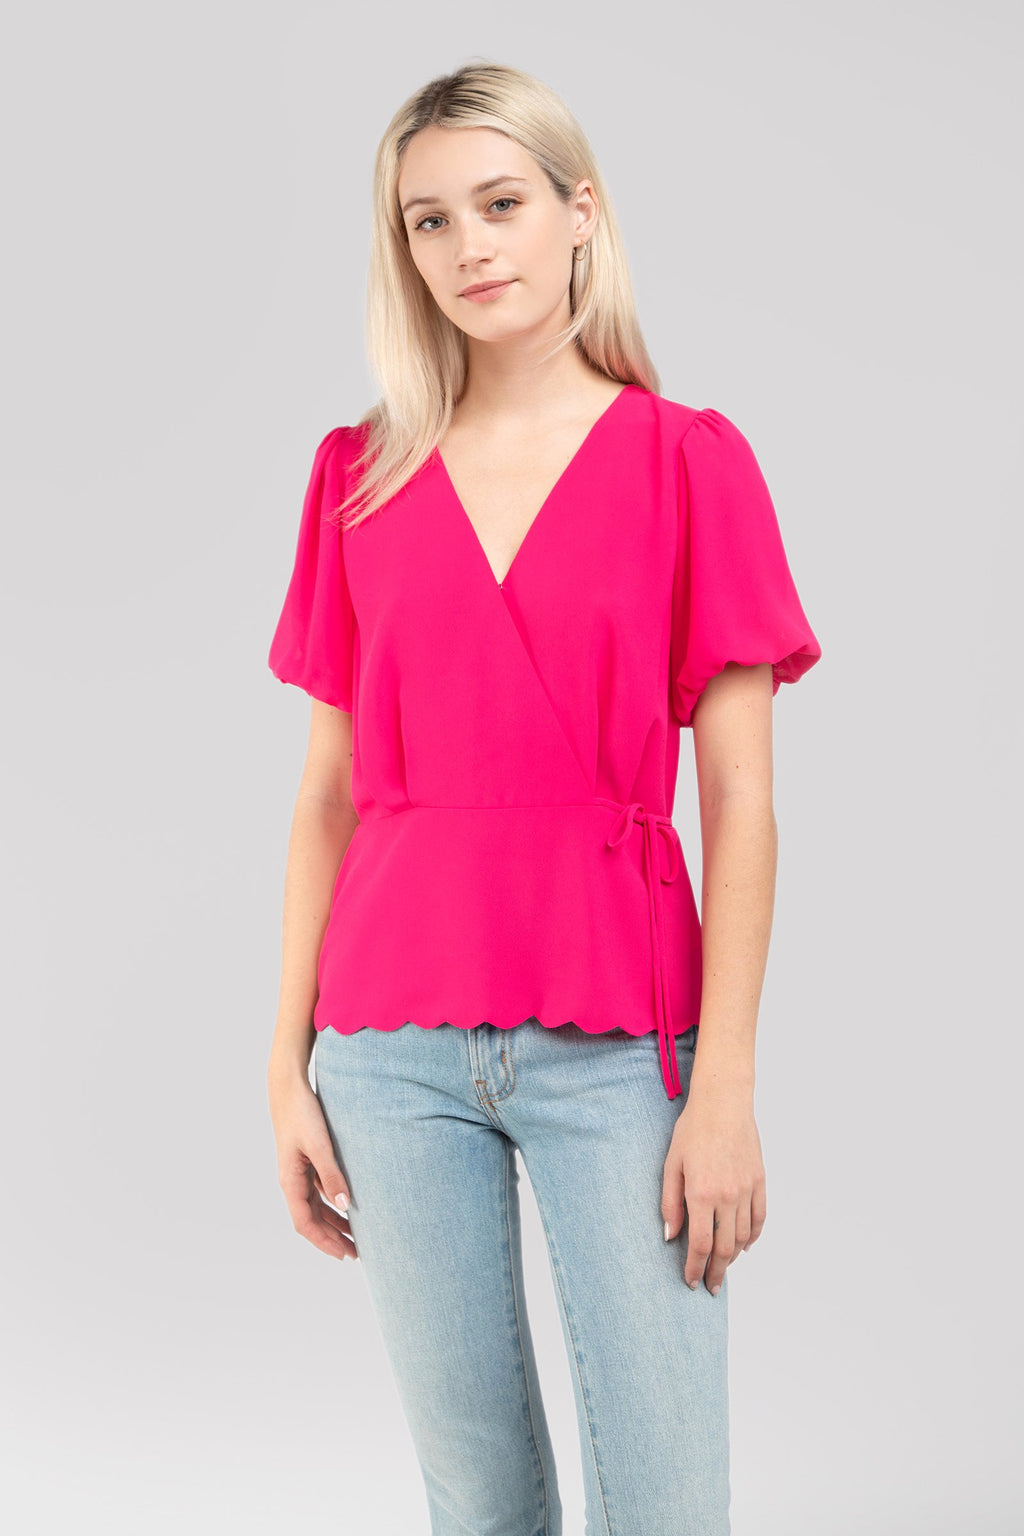 Short Sleeve Scalloped Hem Blouse in Hot Pink